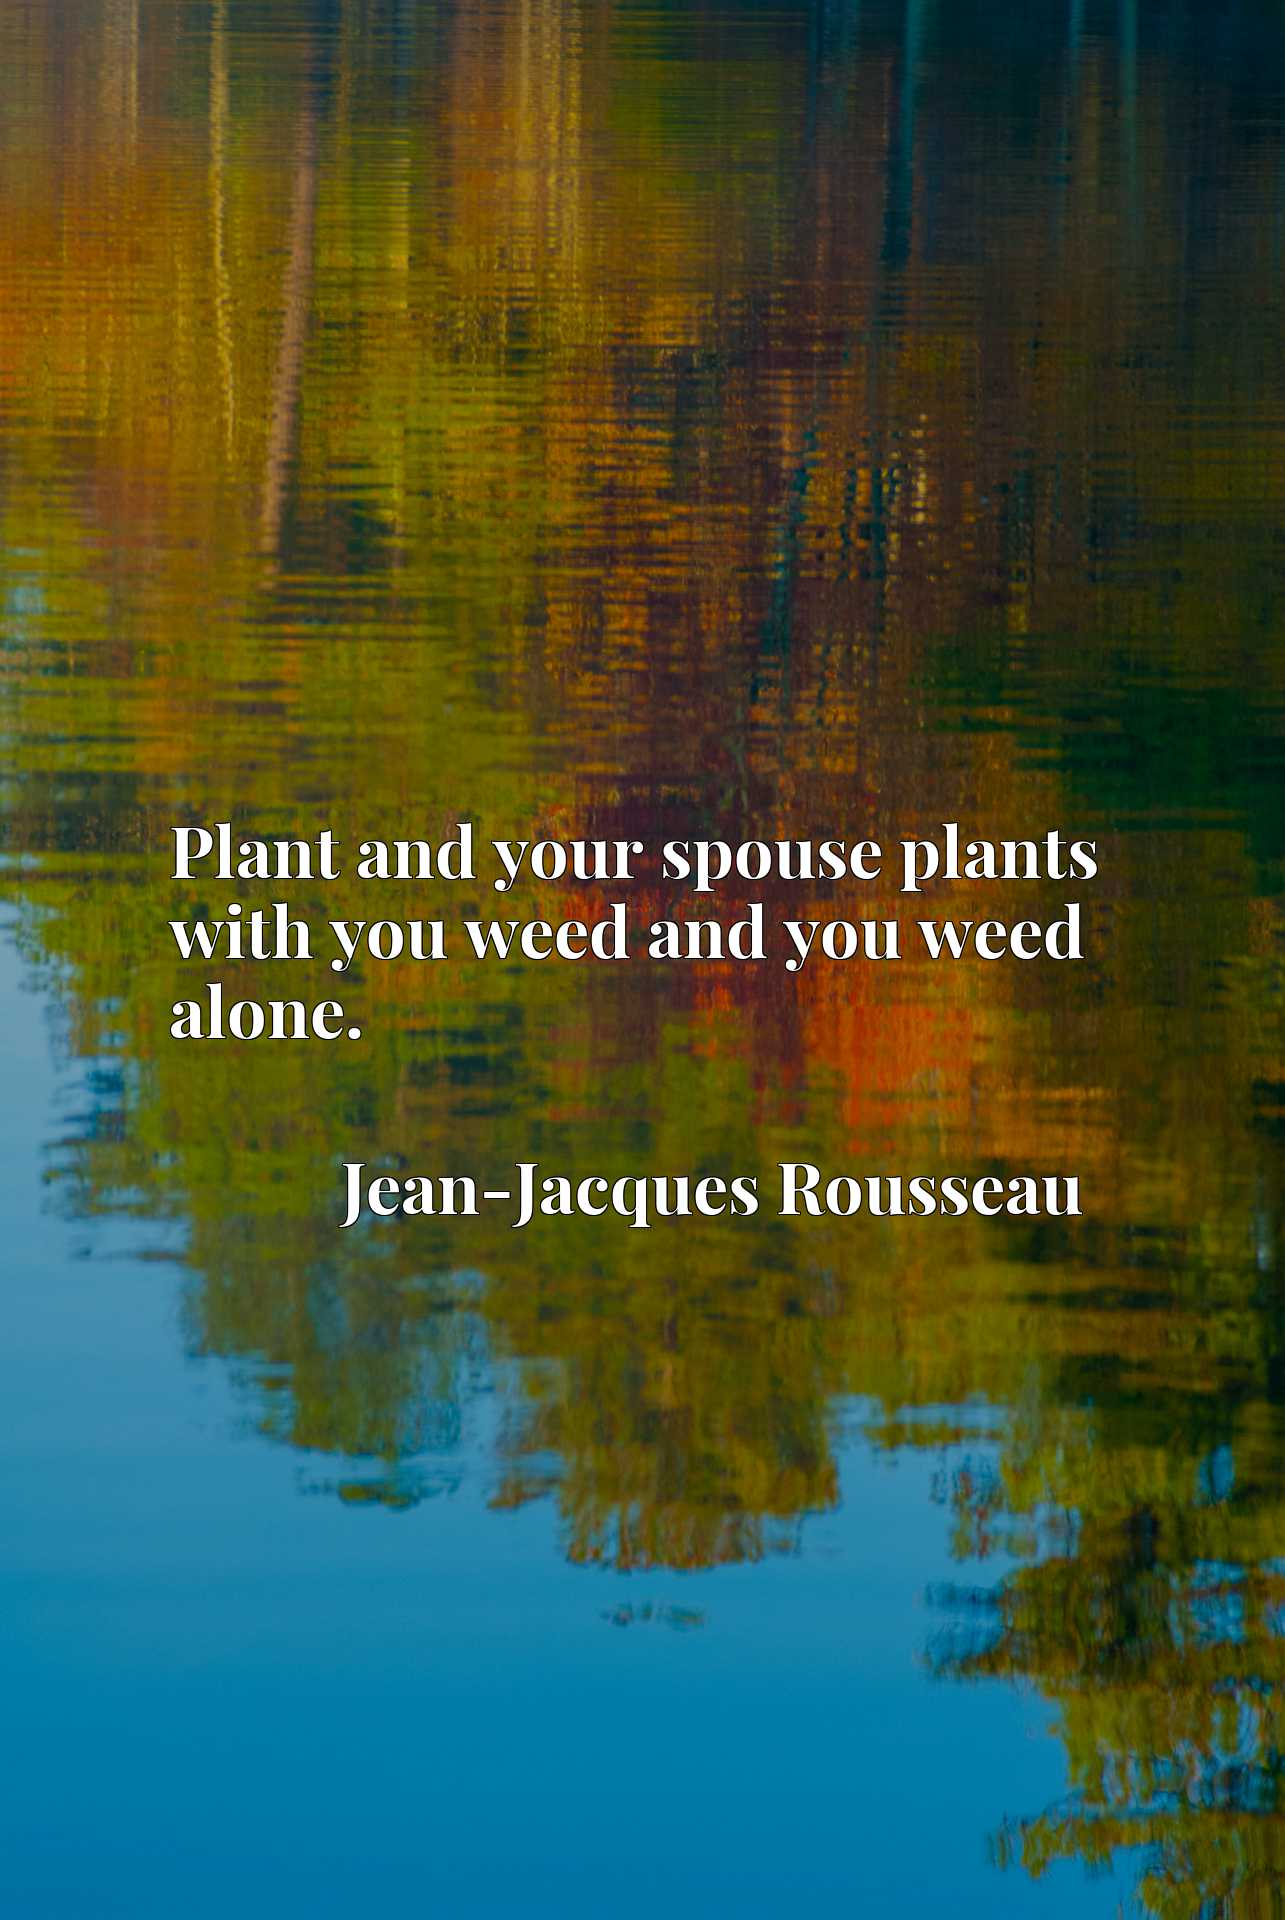 Plant and your spouse plants with you weed and you weed alone.